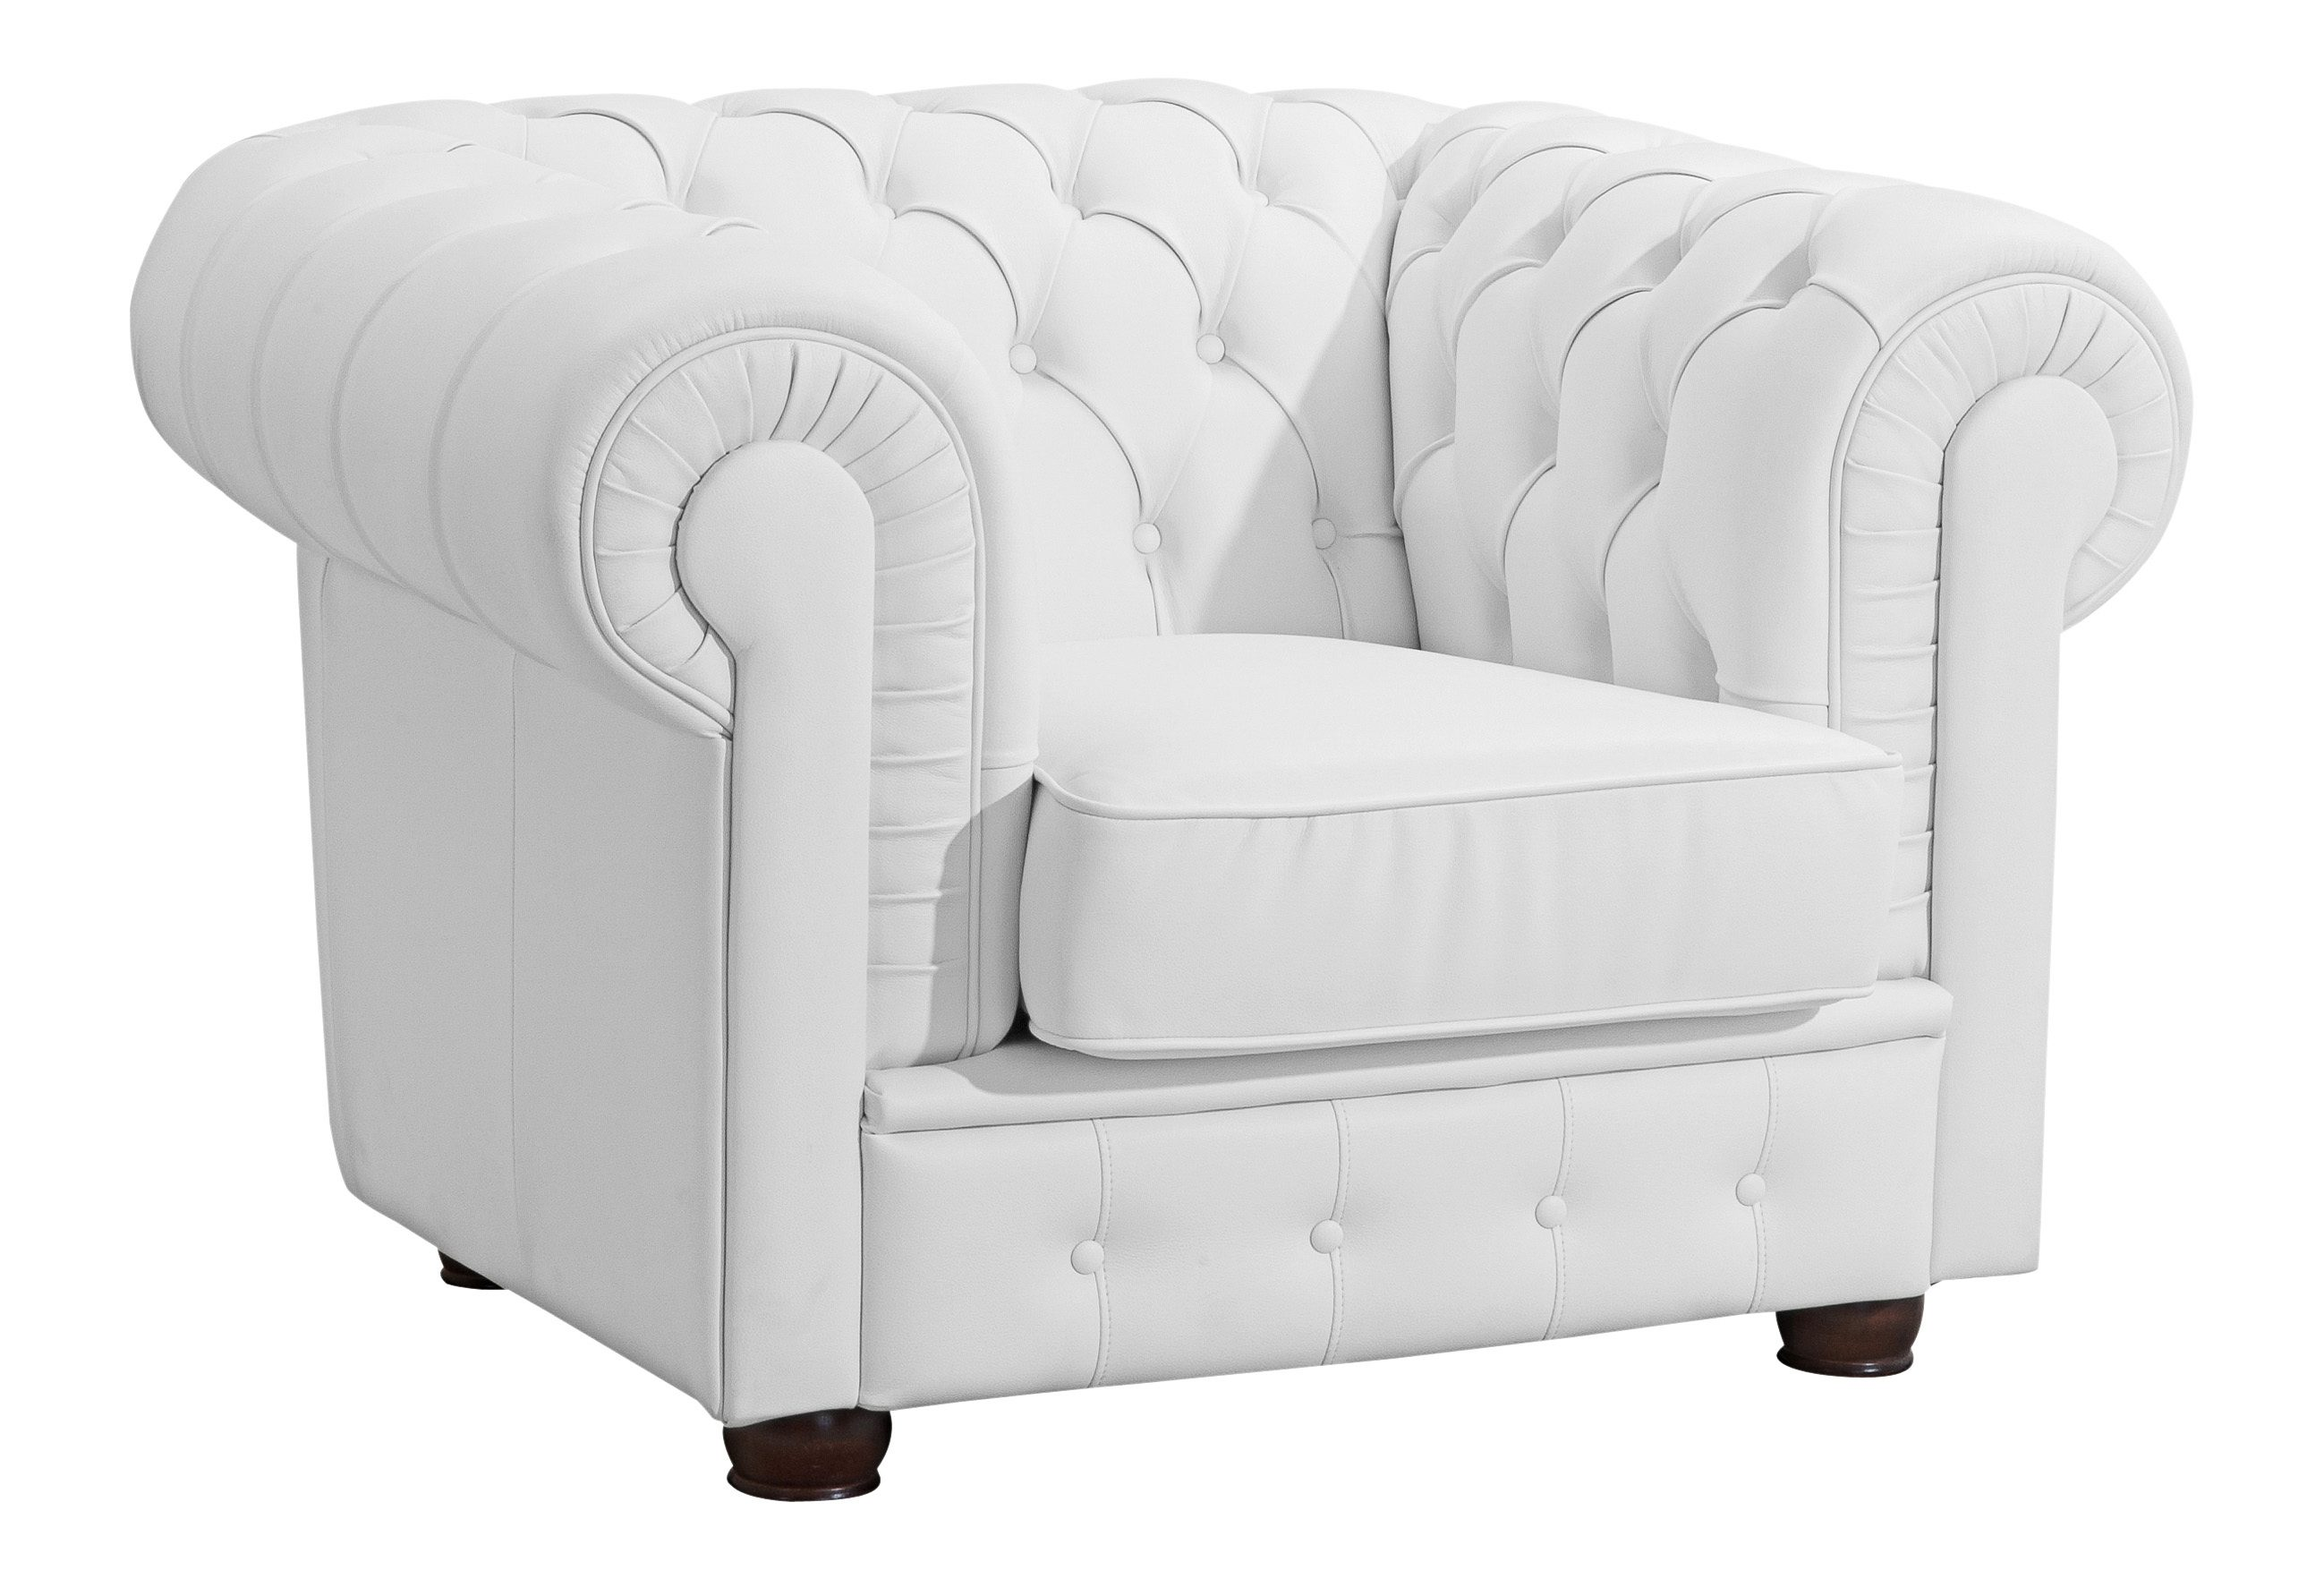 Max Winzer Chesterfield-Sessel Windsor